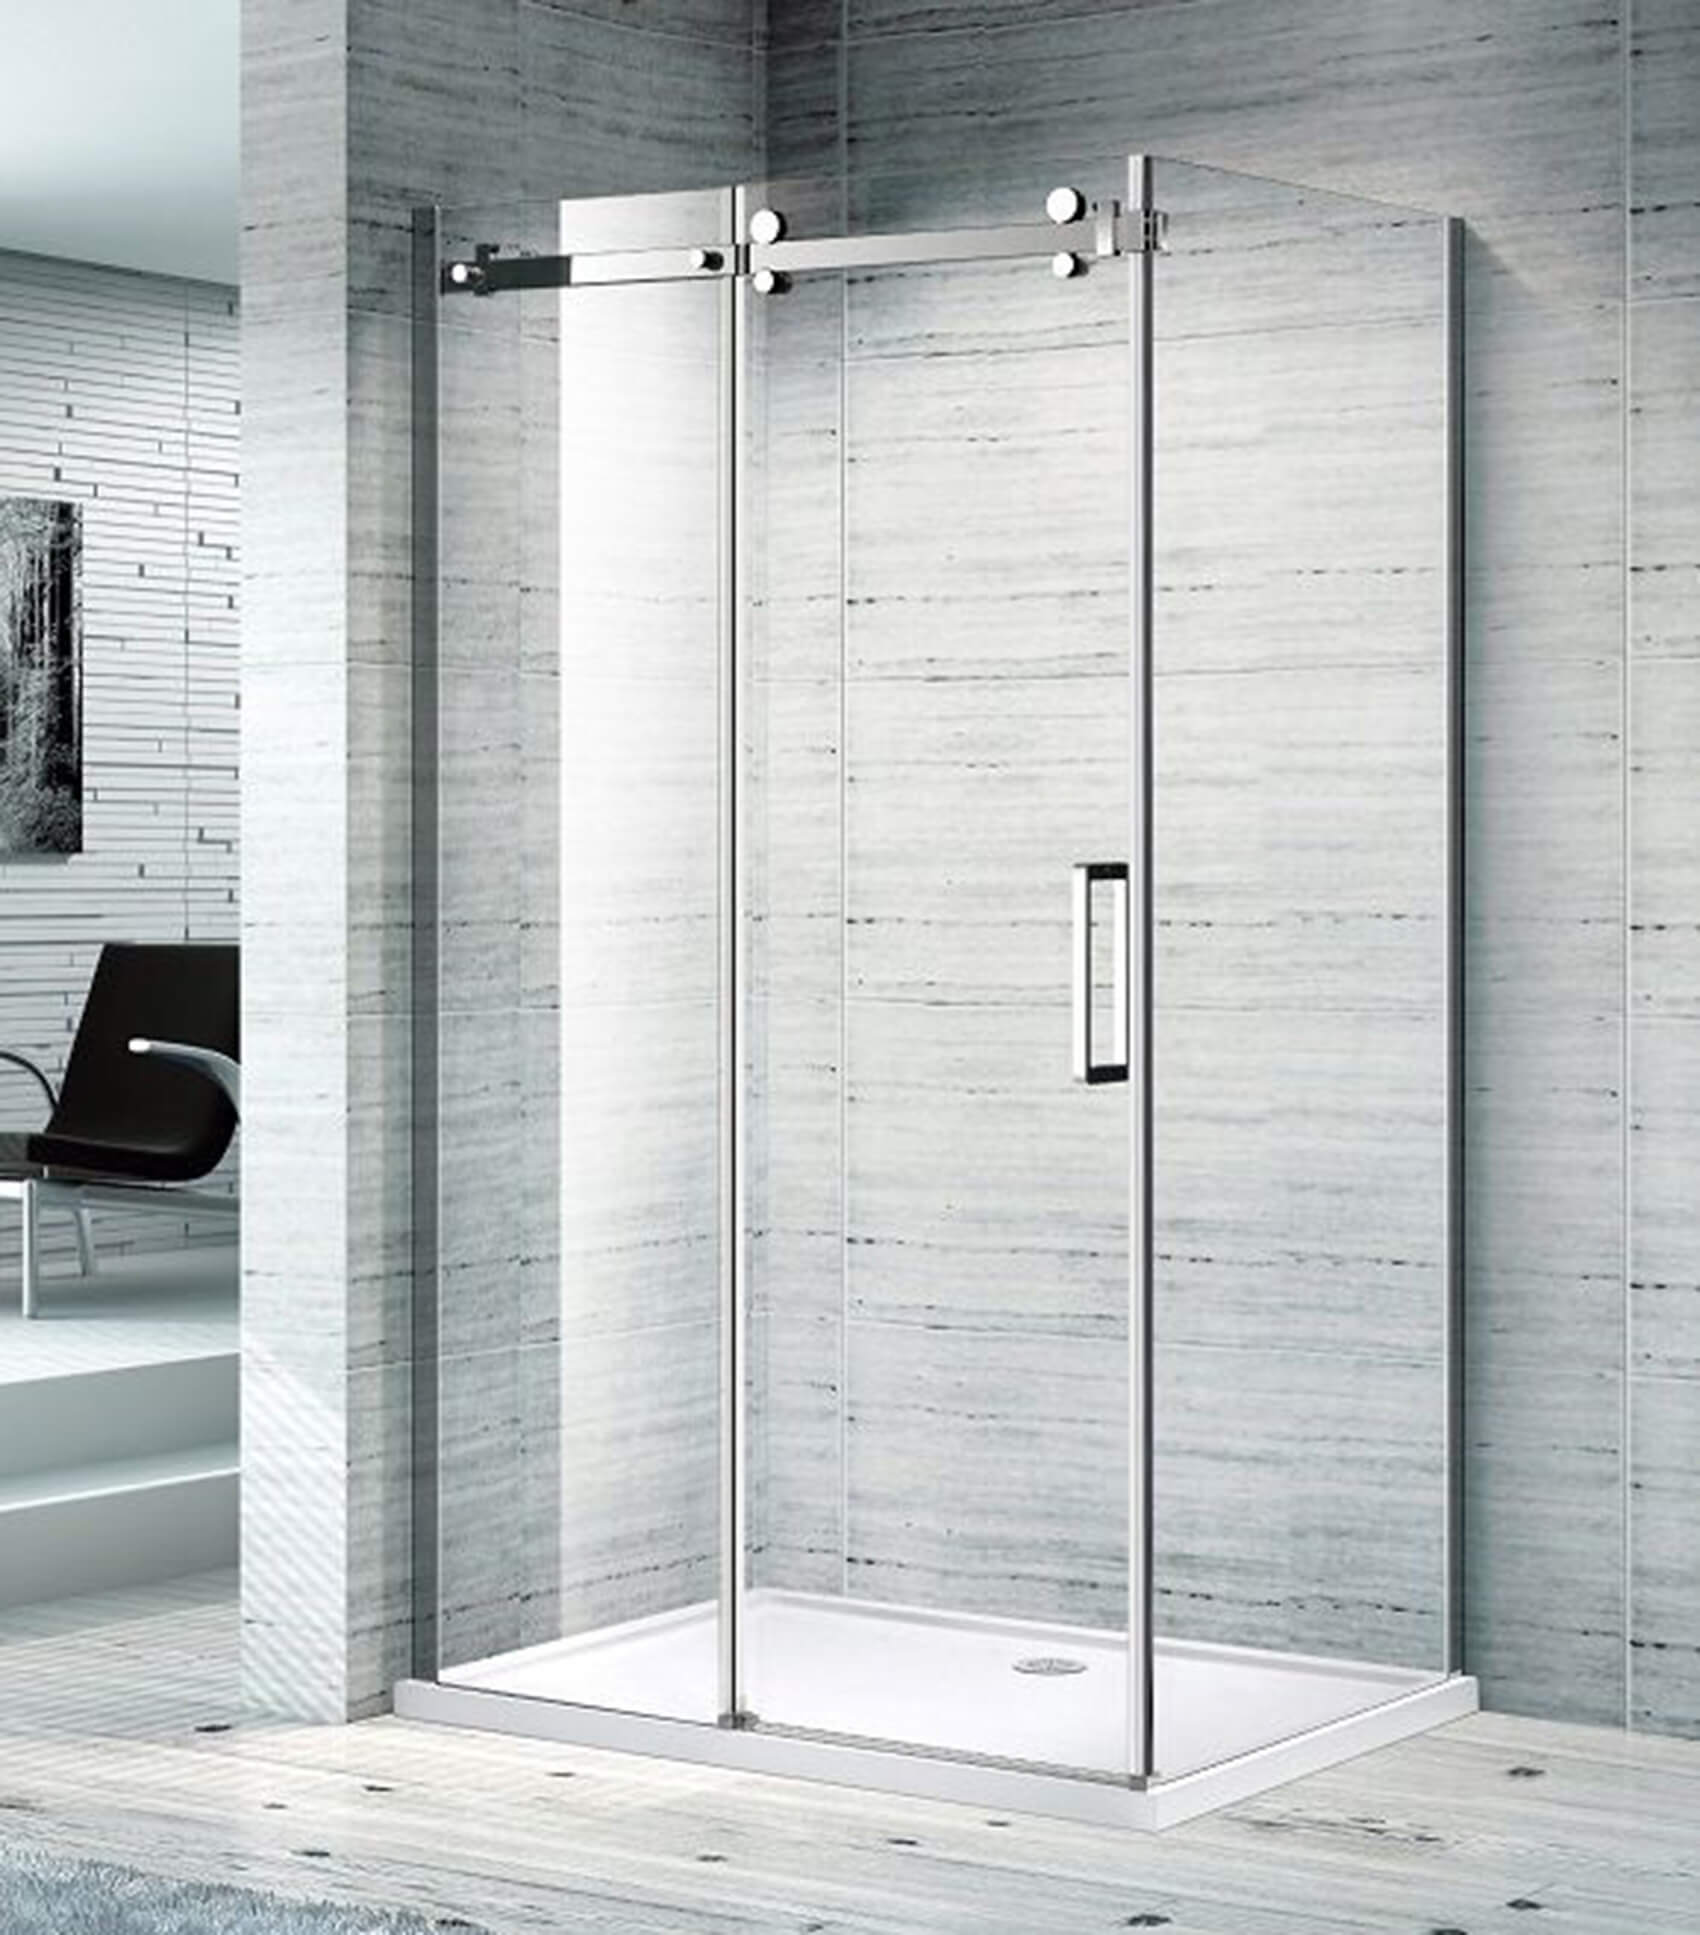 MELBOURNE BATHROOM SLIDING SHOWER SCREEN 07